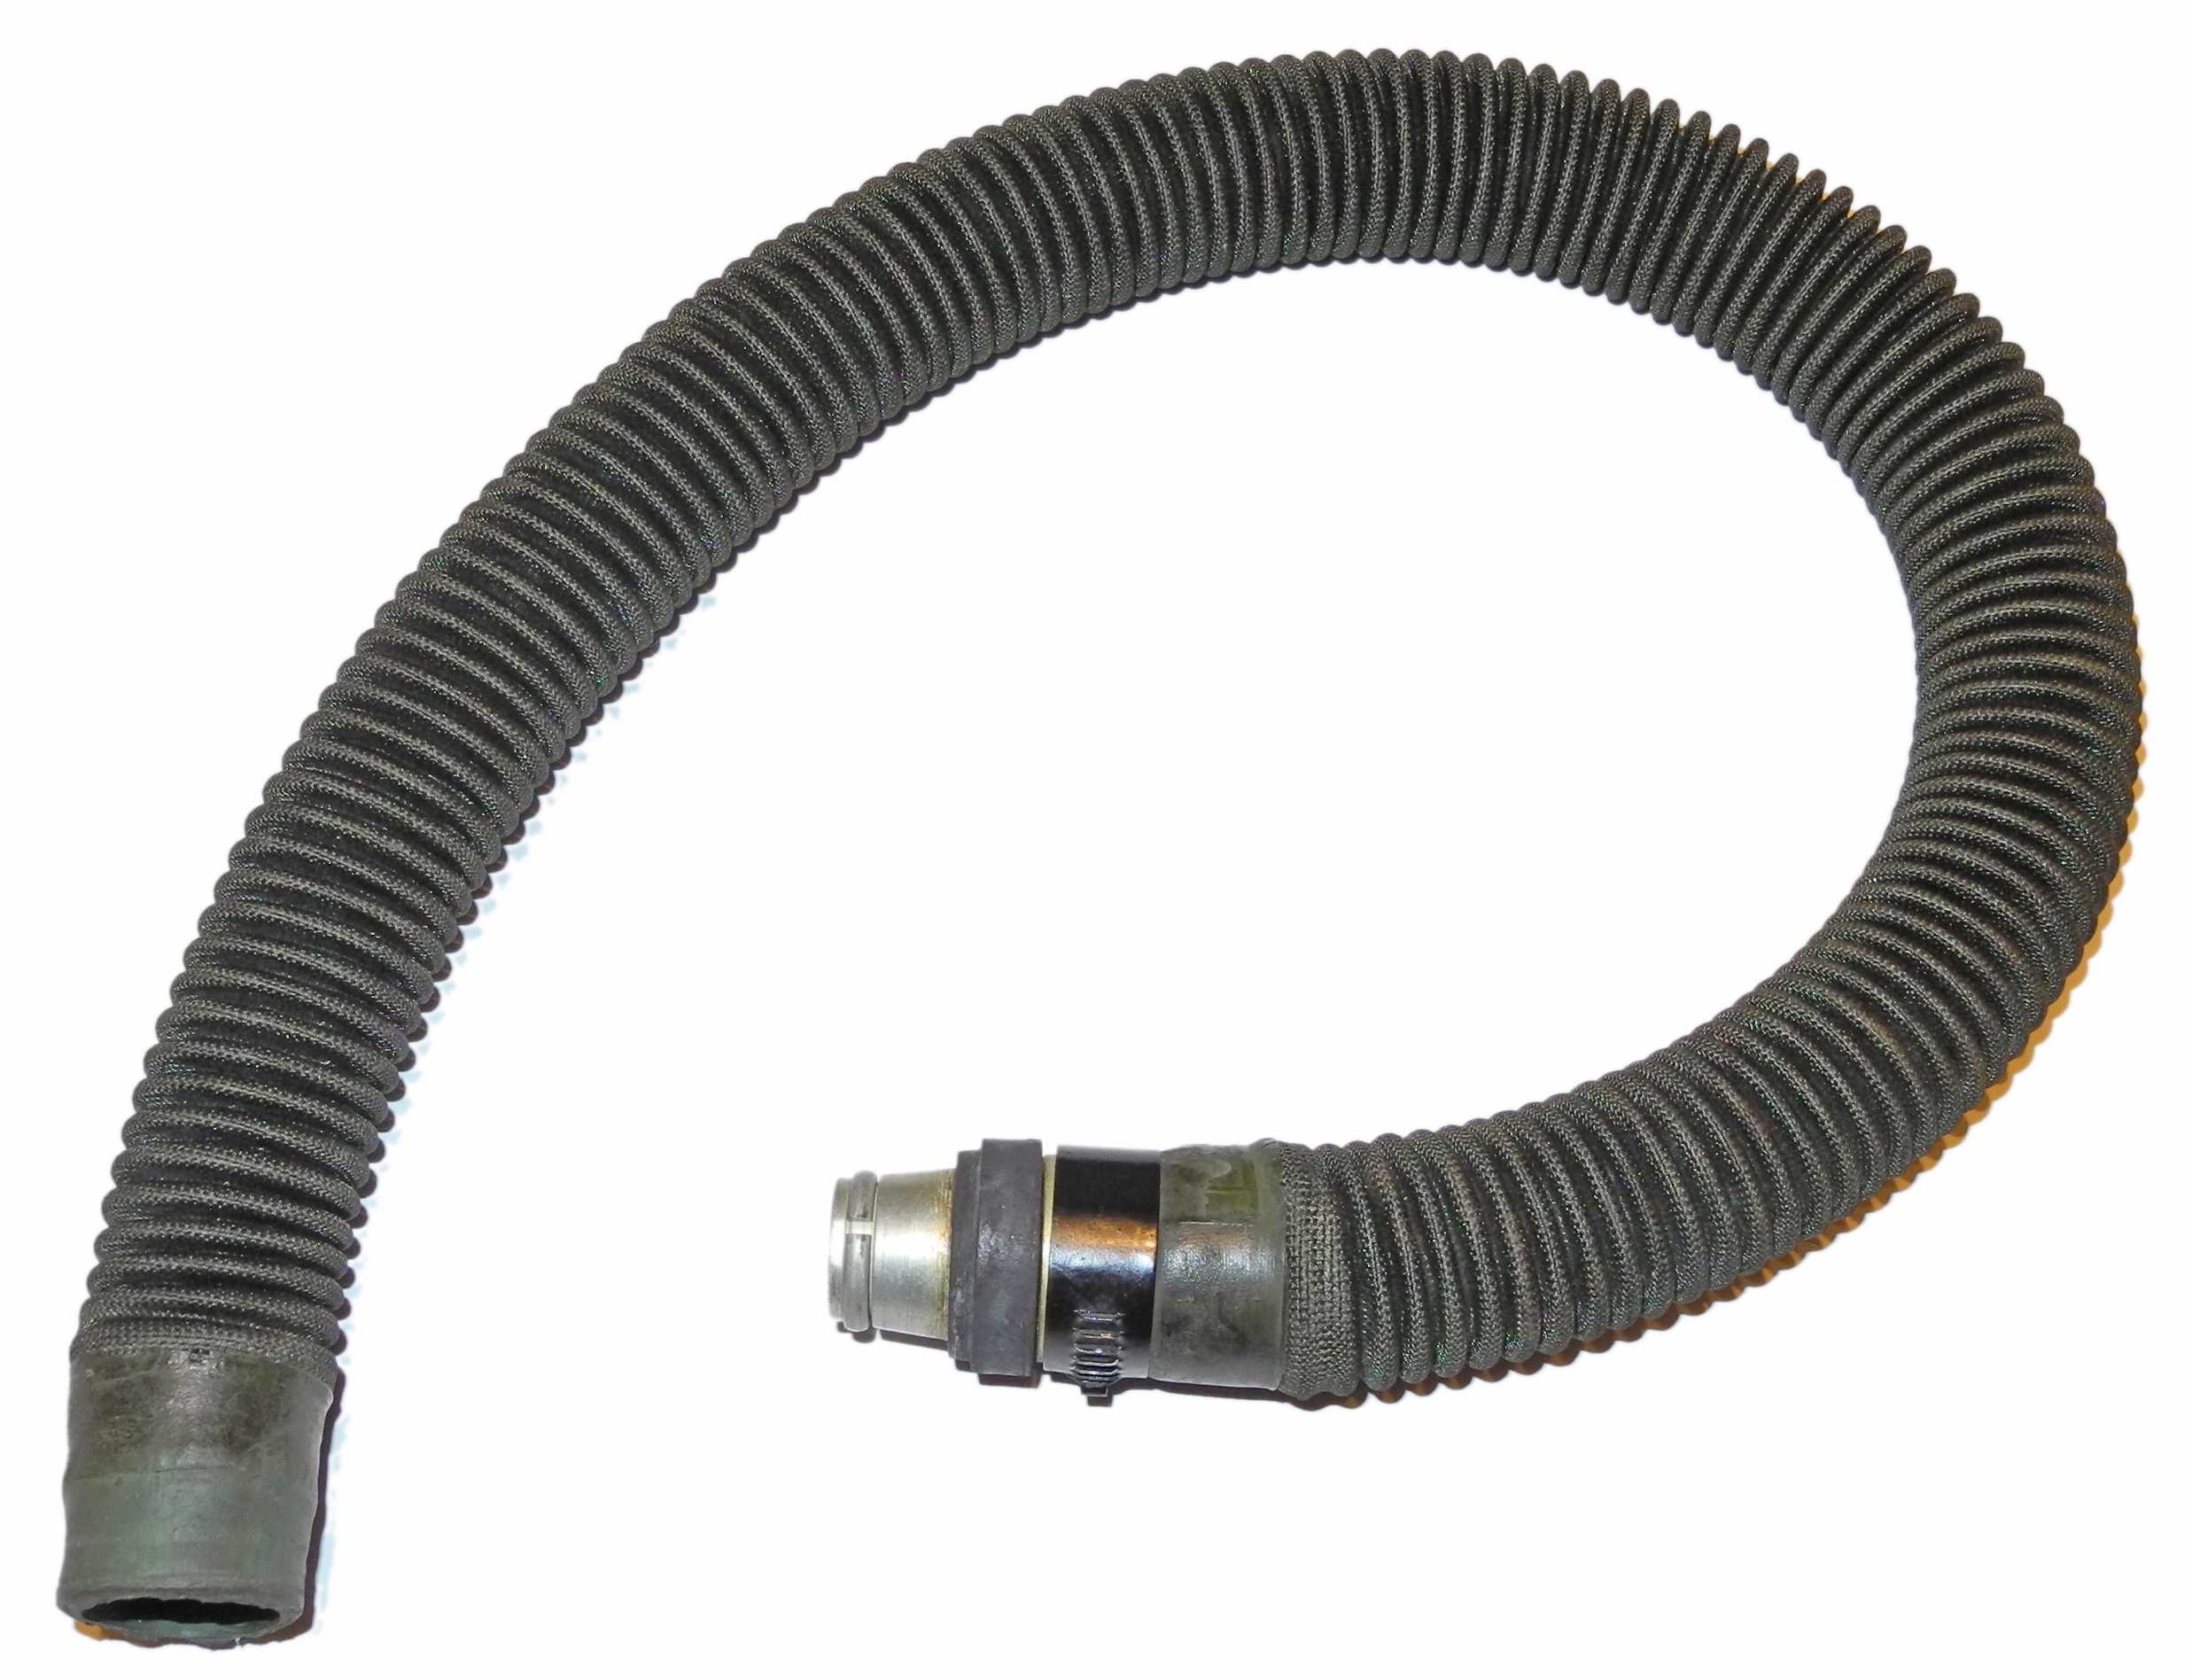 AAF oxygen extension hose